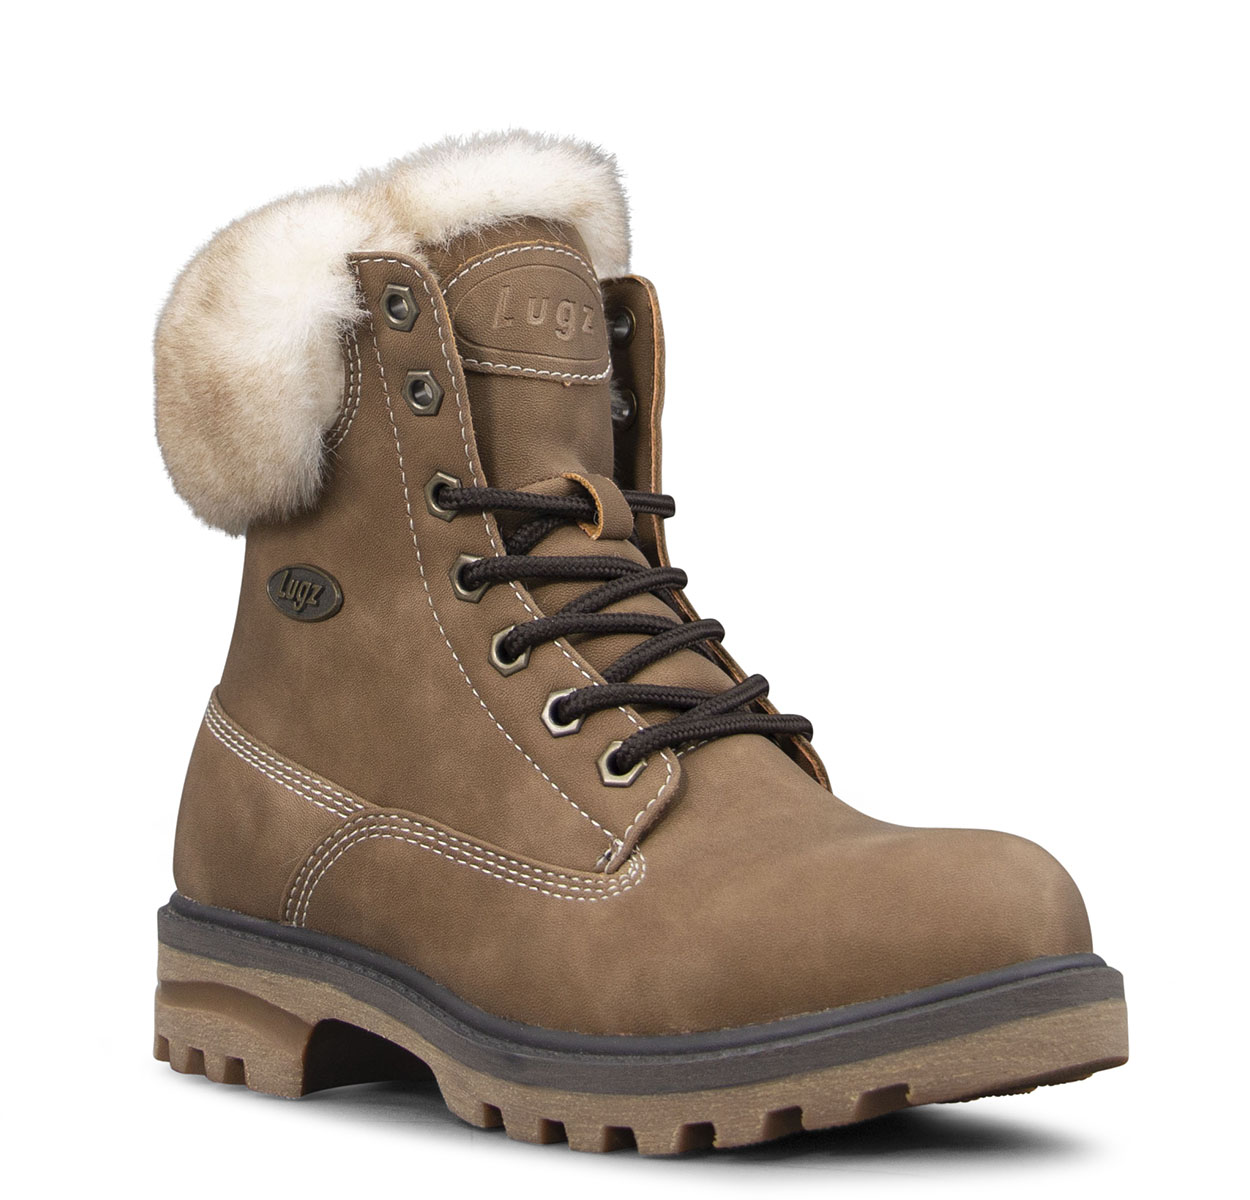 Women's Empire Hi Fur 6-Inch Boot (Choose Your Color: GUMNUT/CREAM/BARK, Choose Your Size: 10.0)